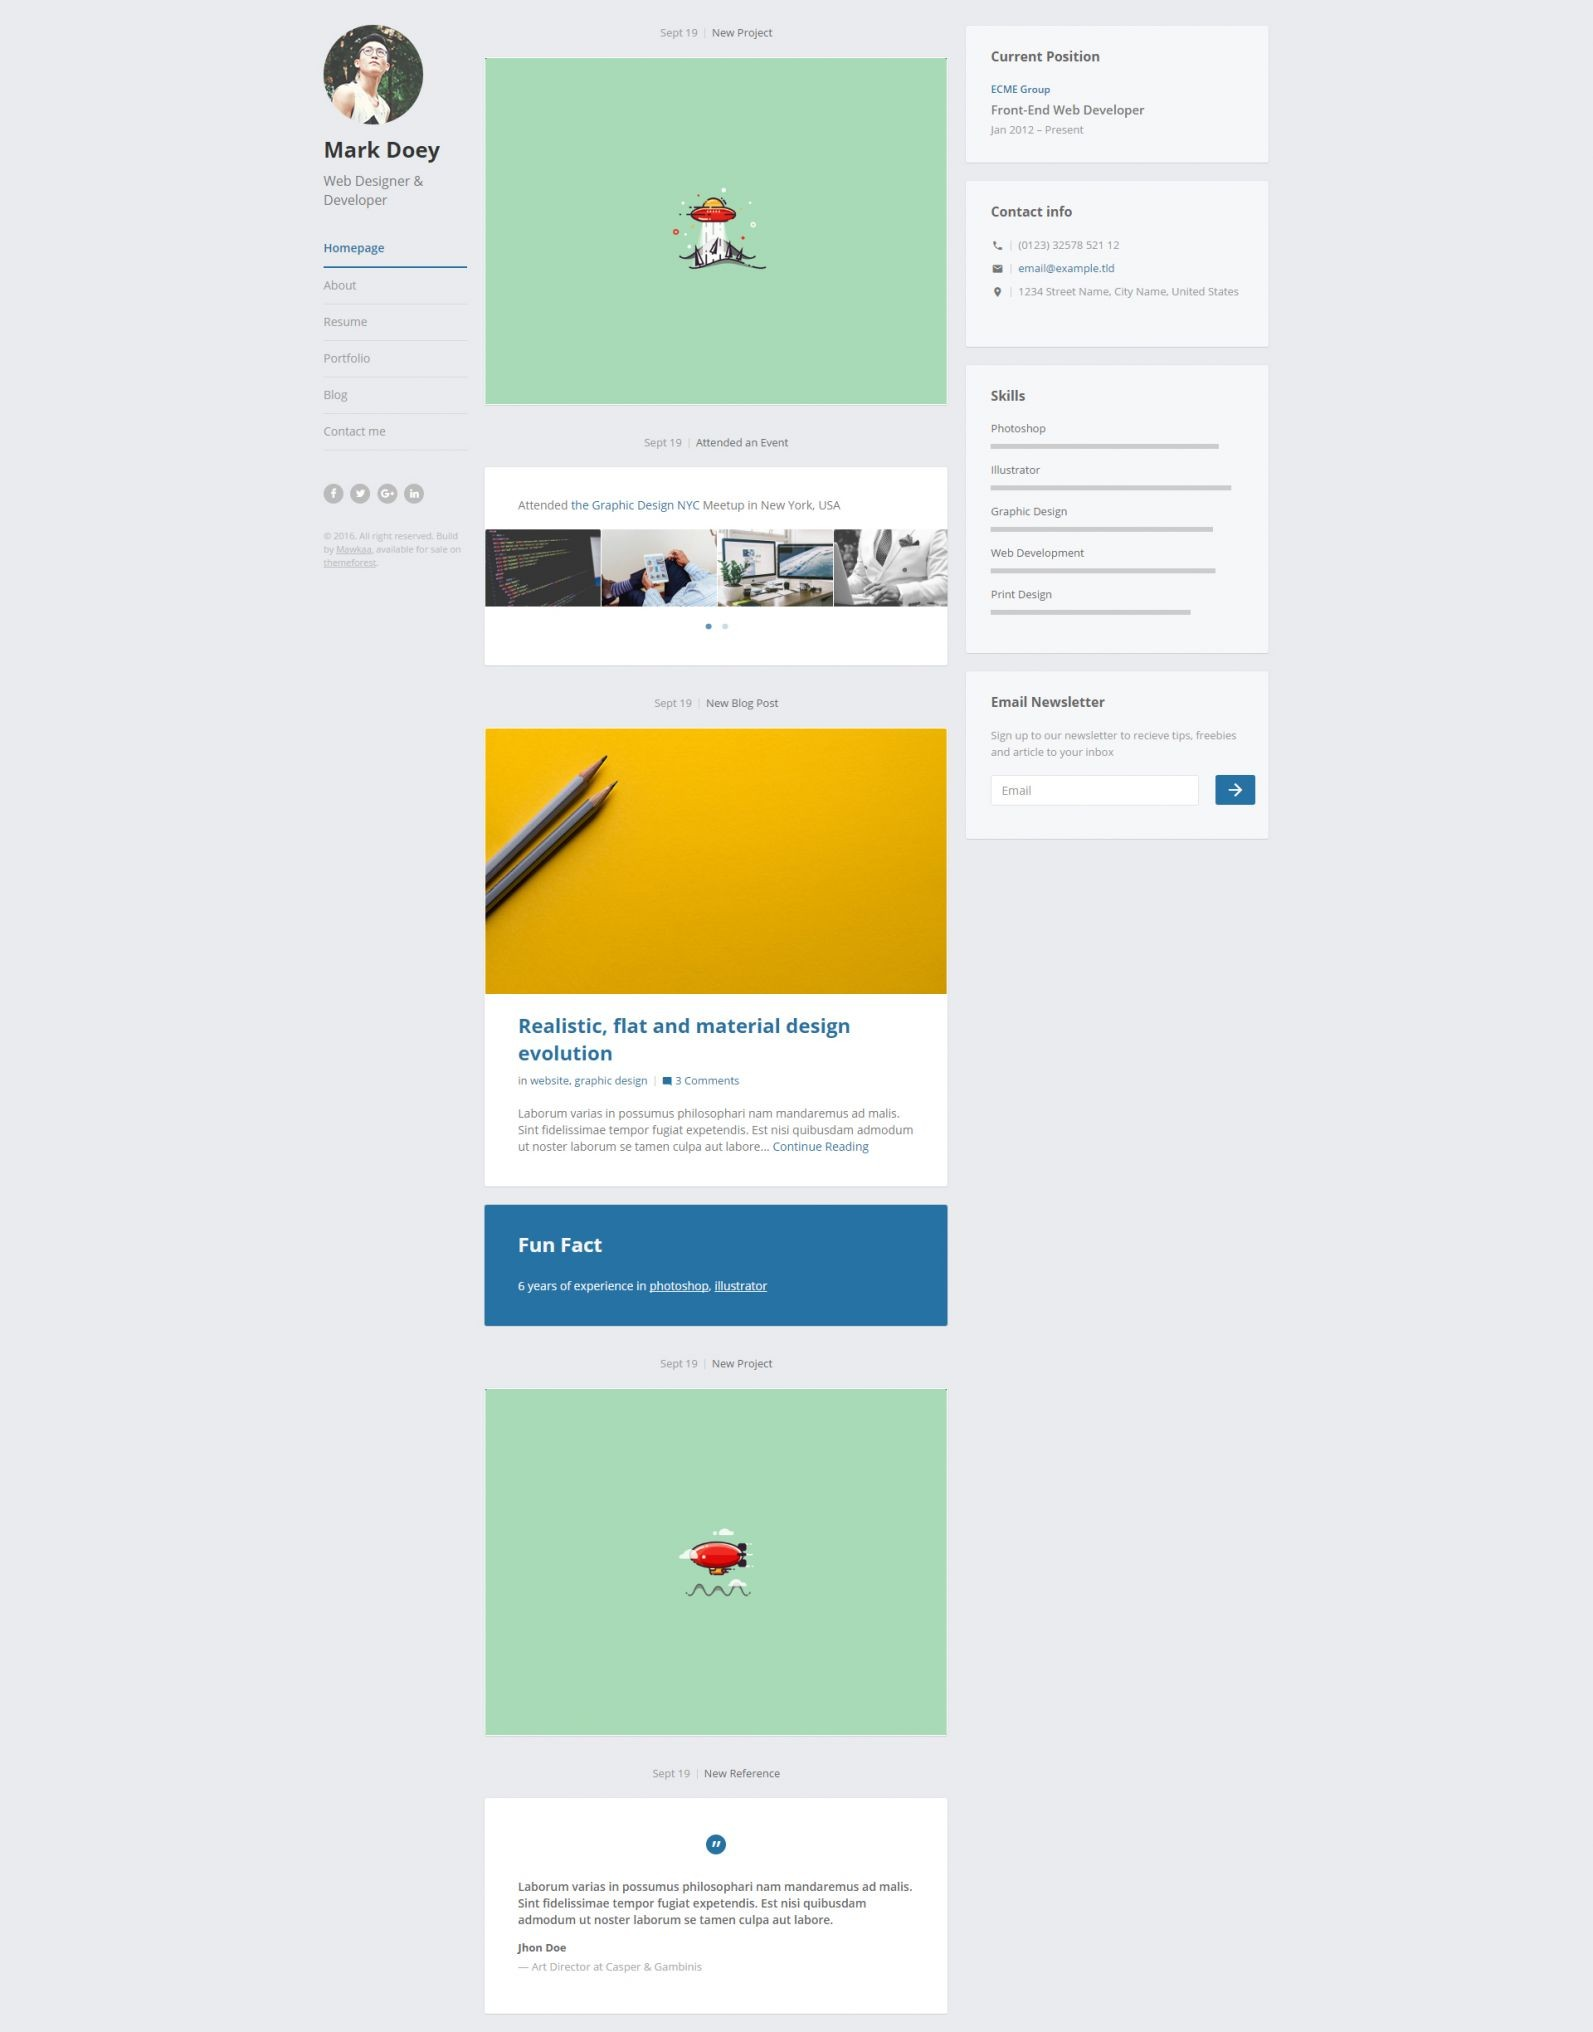 Outlook Business Card Template Downloadcustomize Free Line